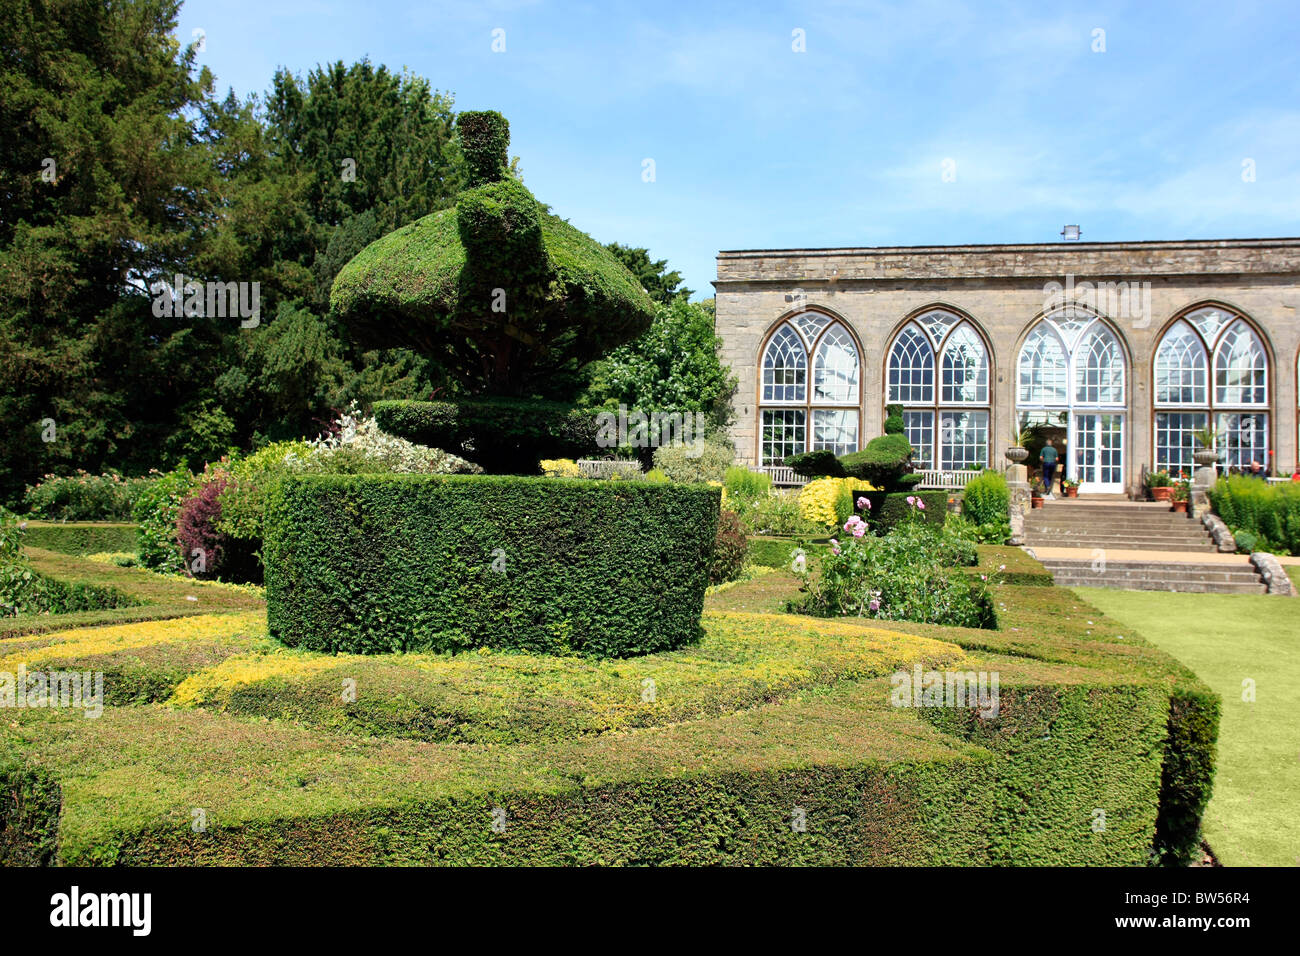 Topiary Designs Part - 44: Stock Photo - The Box Privet Hedges And Topiary Designs In The Orangery At  Warwick Castle